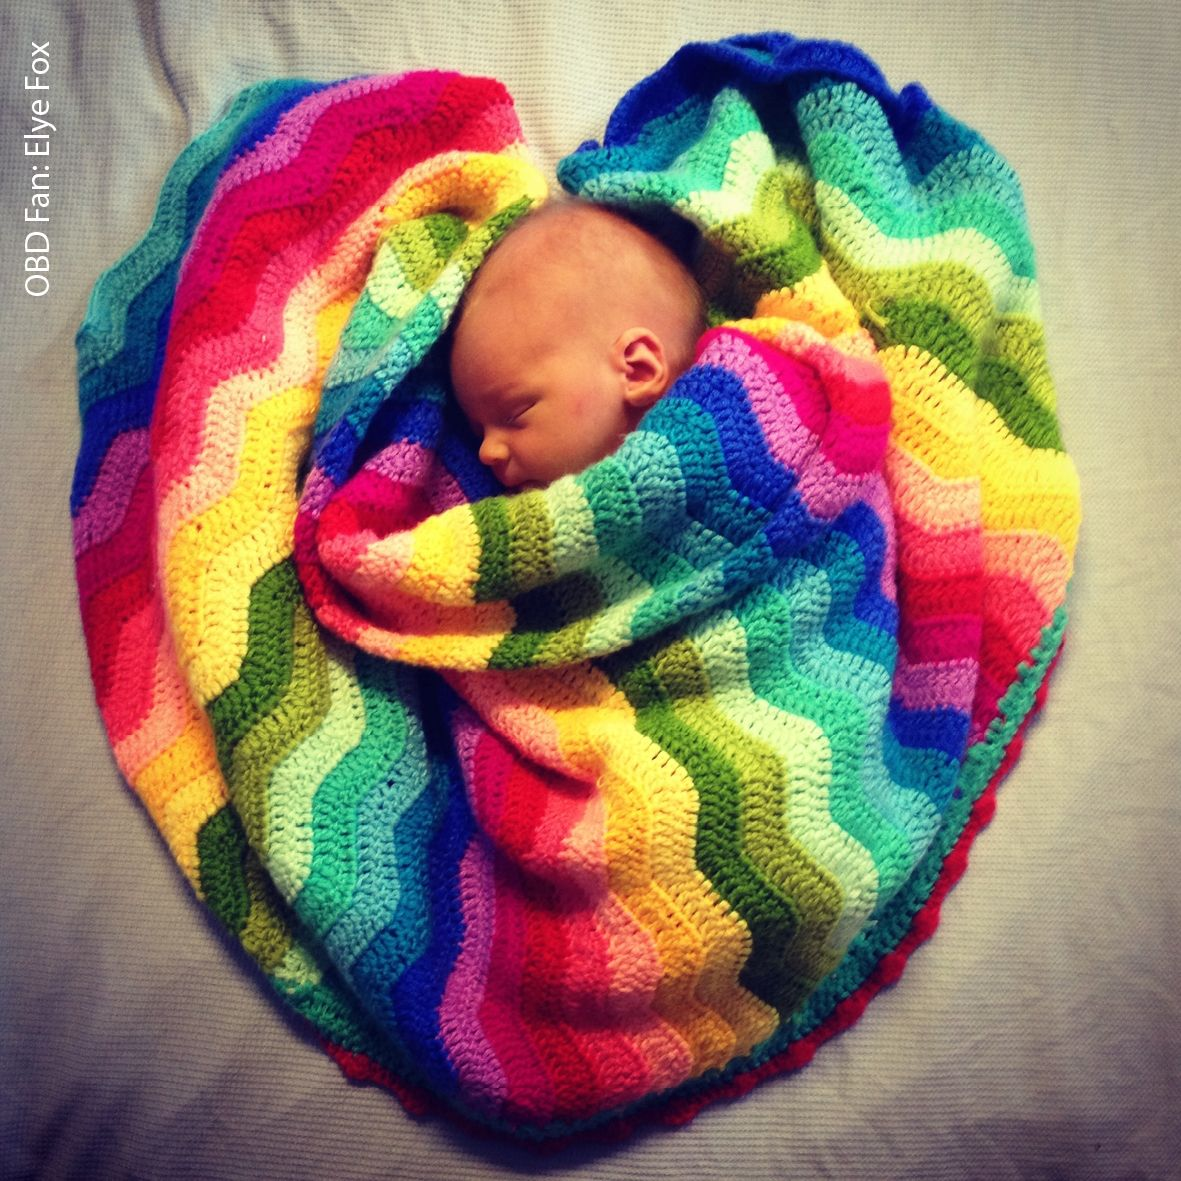 O.B.Designs Rainbow Blanket - hardtofind. @Amy Lyons | Craft Ideas ...